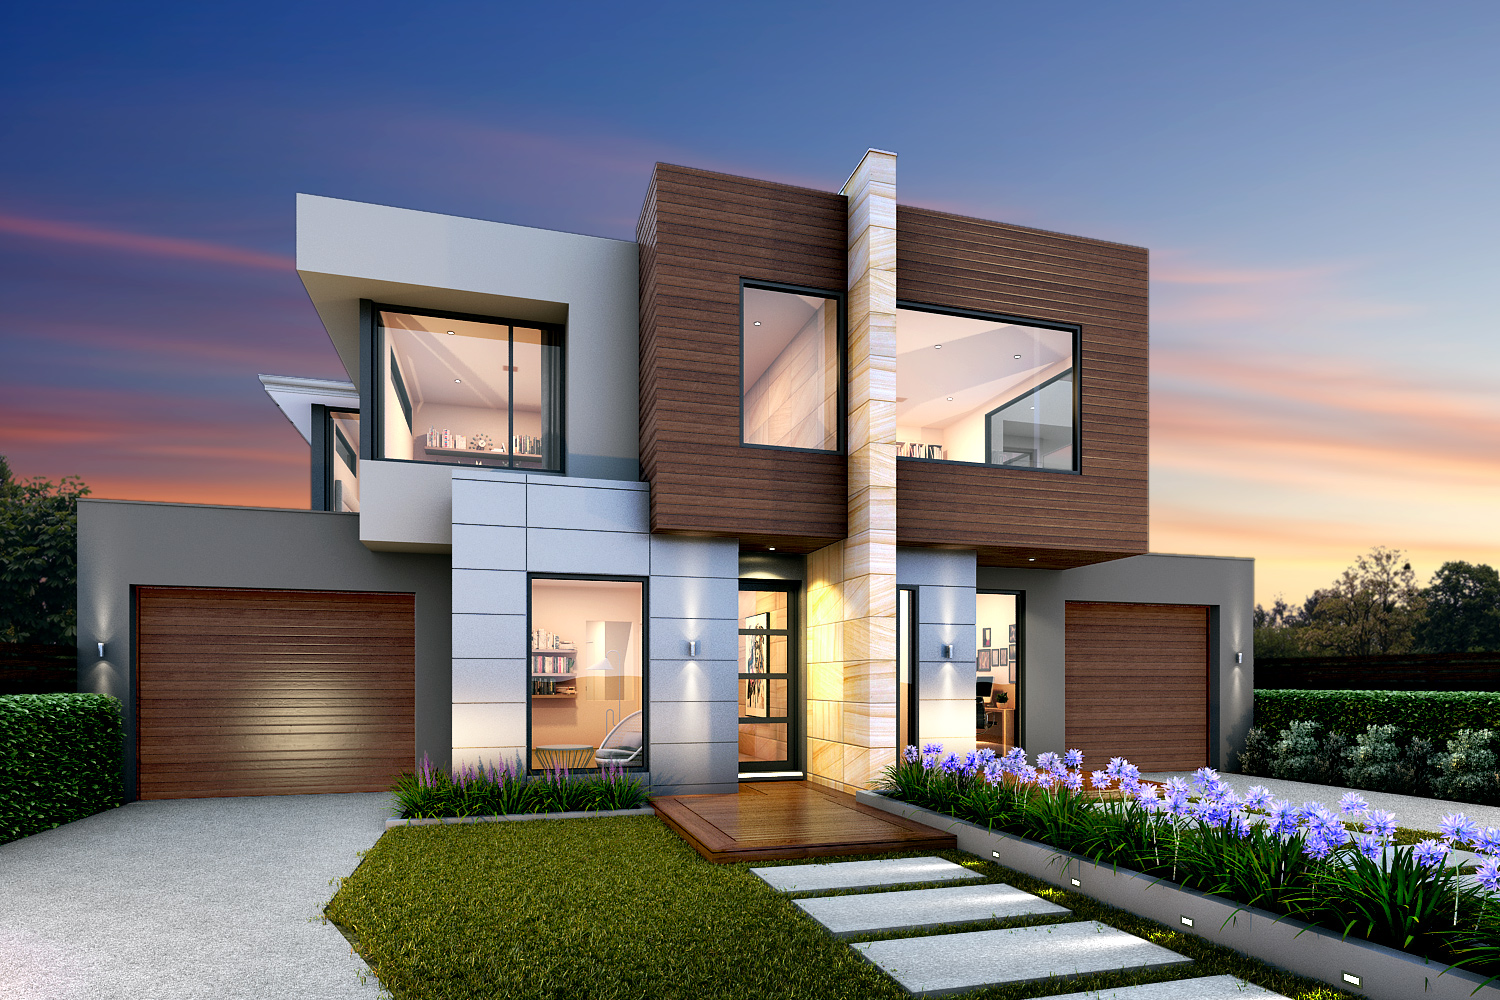 50 Contemporary Two Storey Exterior Design Ideas